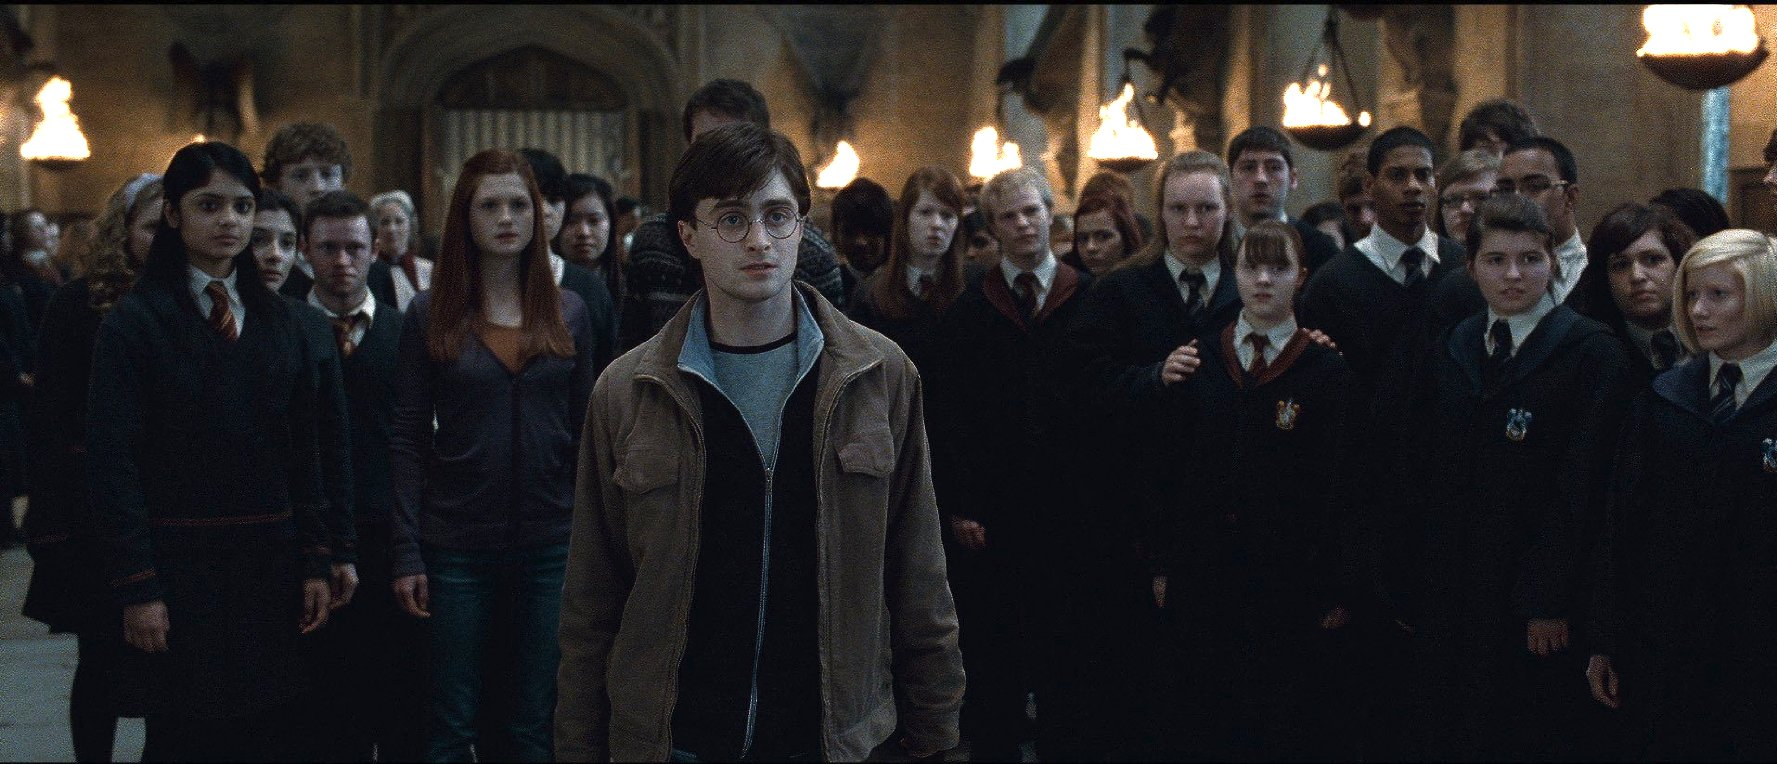 hp-hallows-front.jpg